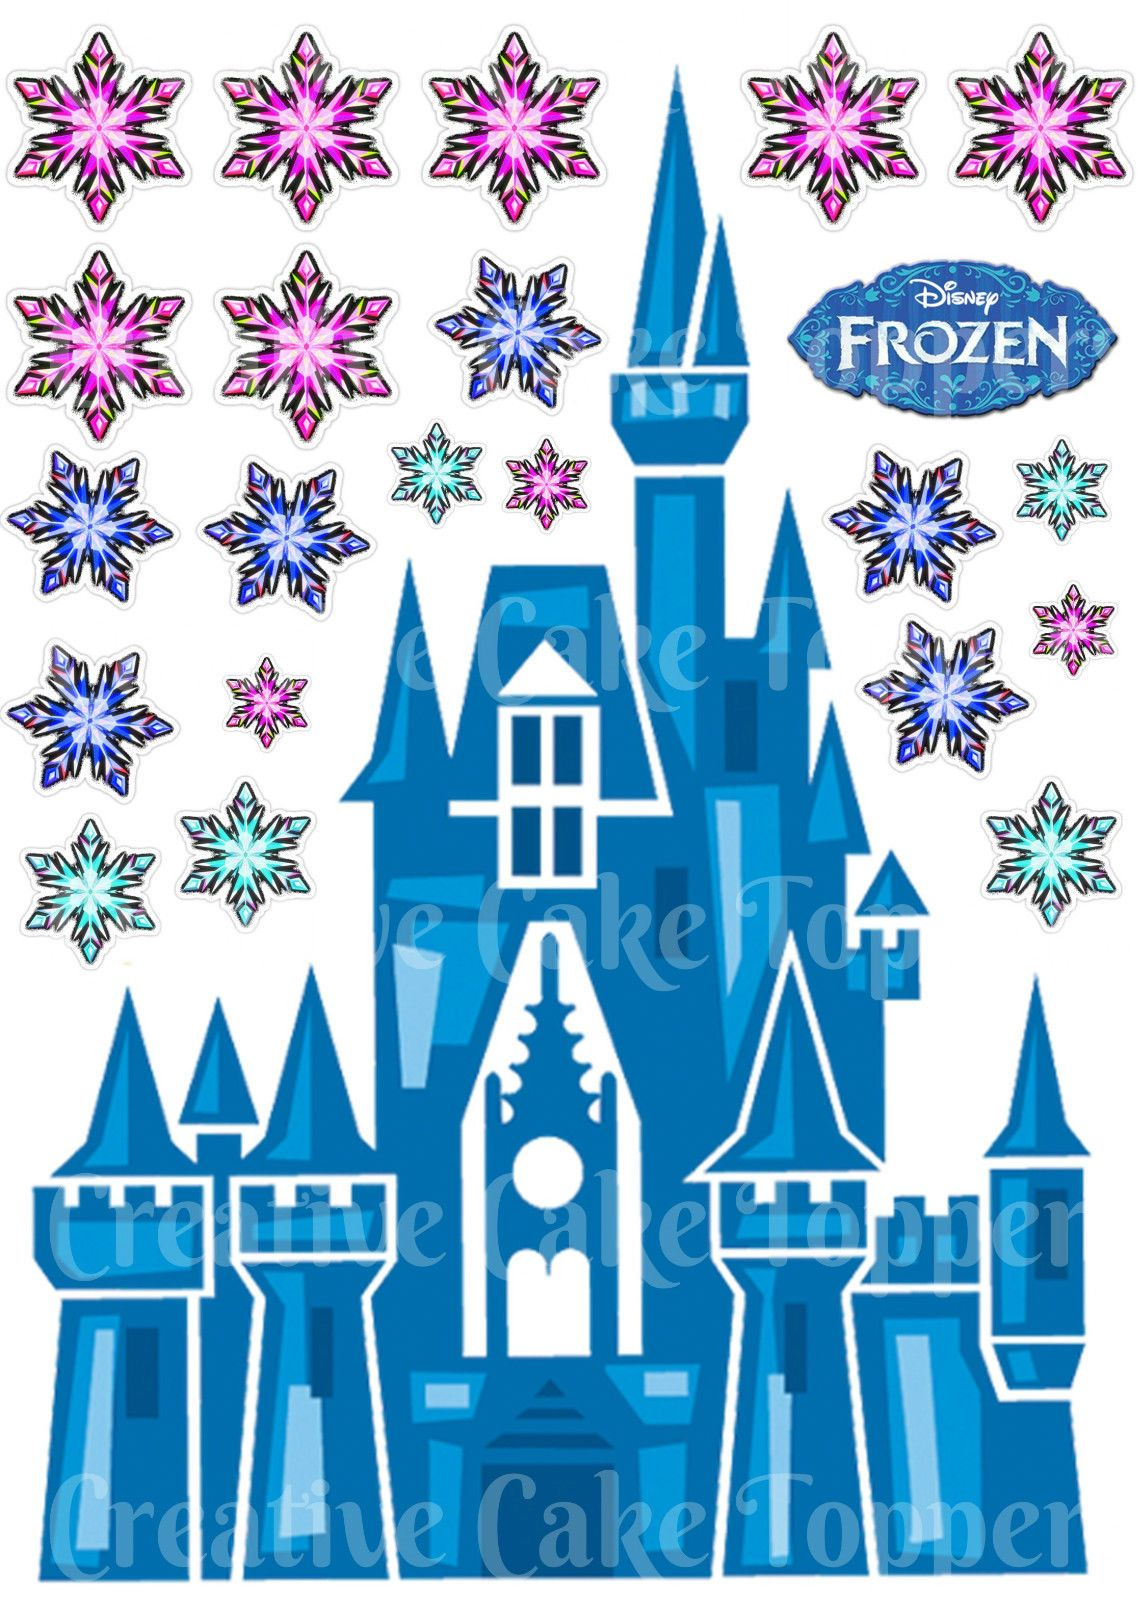 Frozen castle clipart image black and white stock Details about Edible Disney FROZEN CASTLE Princess Snowflake Stand ... image black and white stock